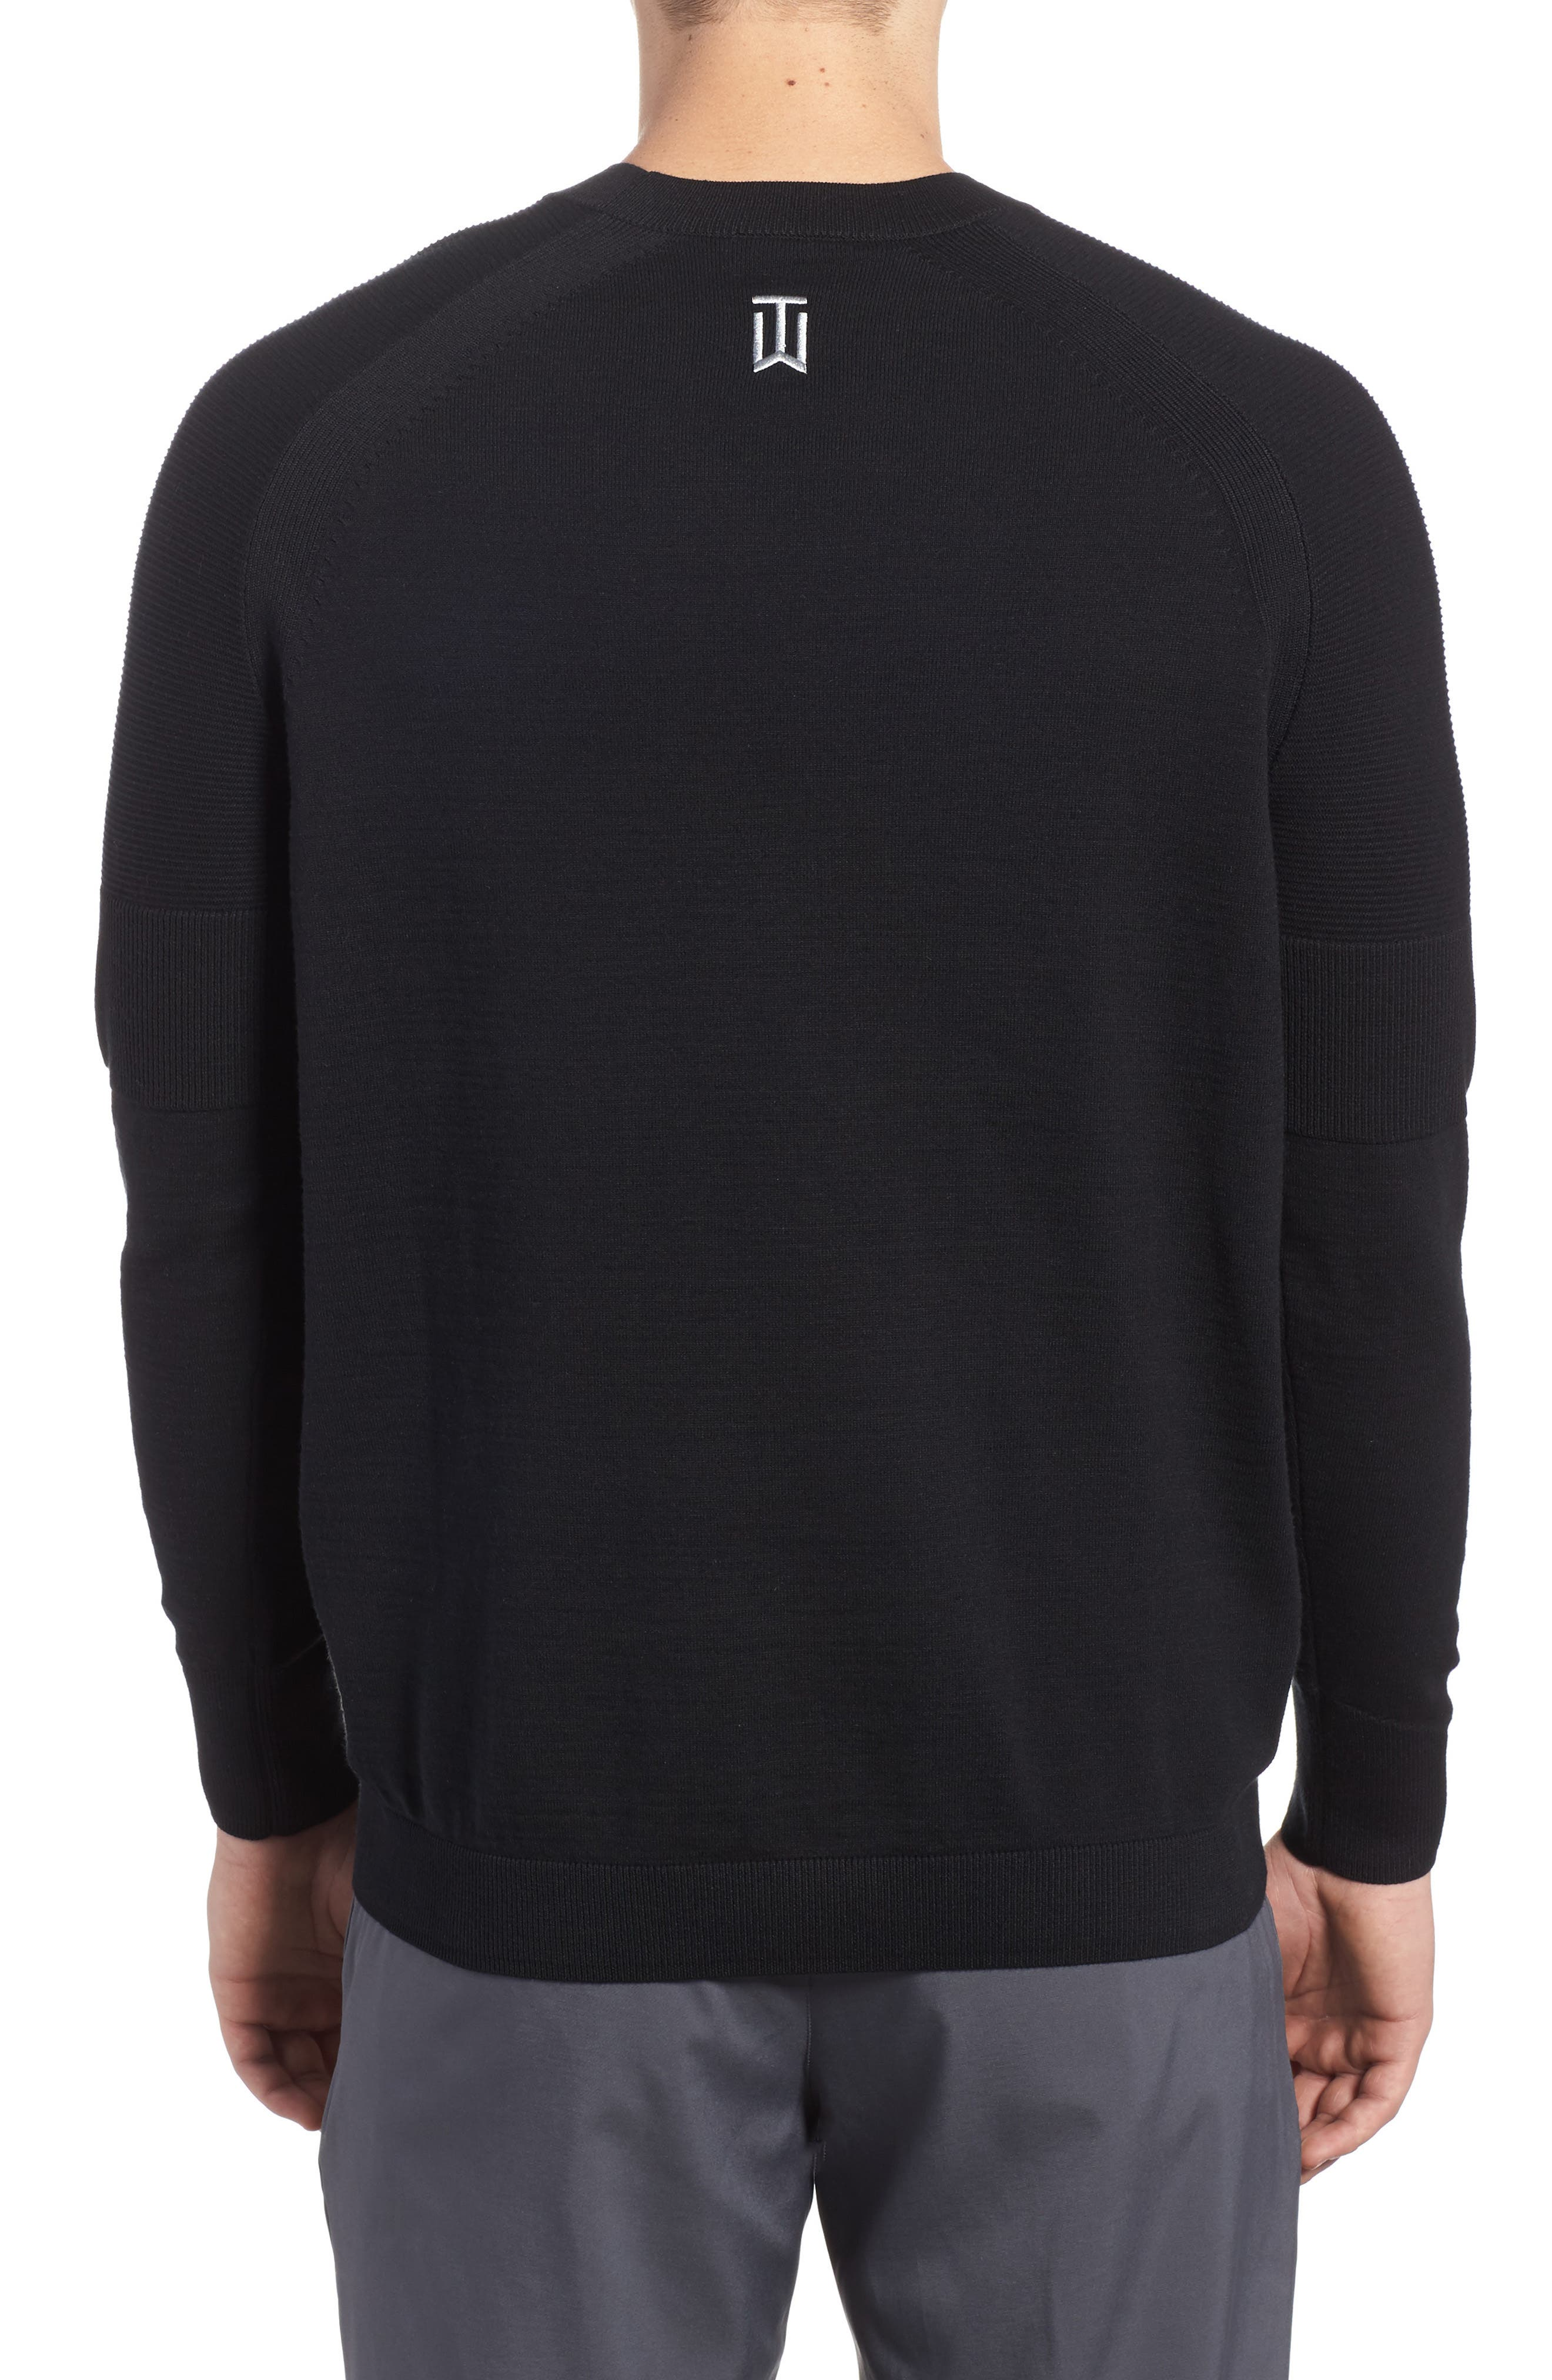 TW Cotton Blend Sweatshirt,                             Alternate thumbnail 2, color,